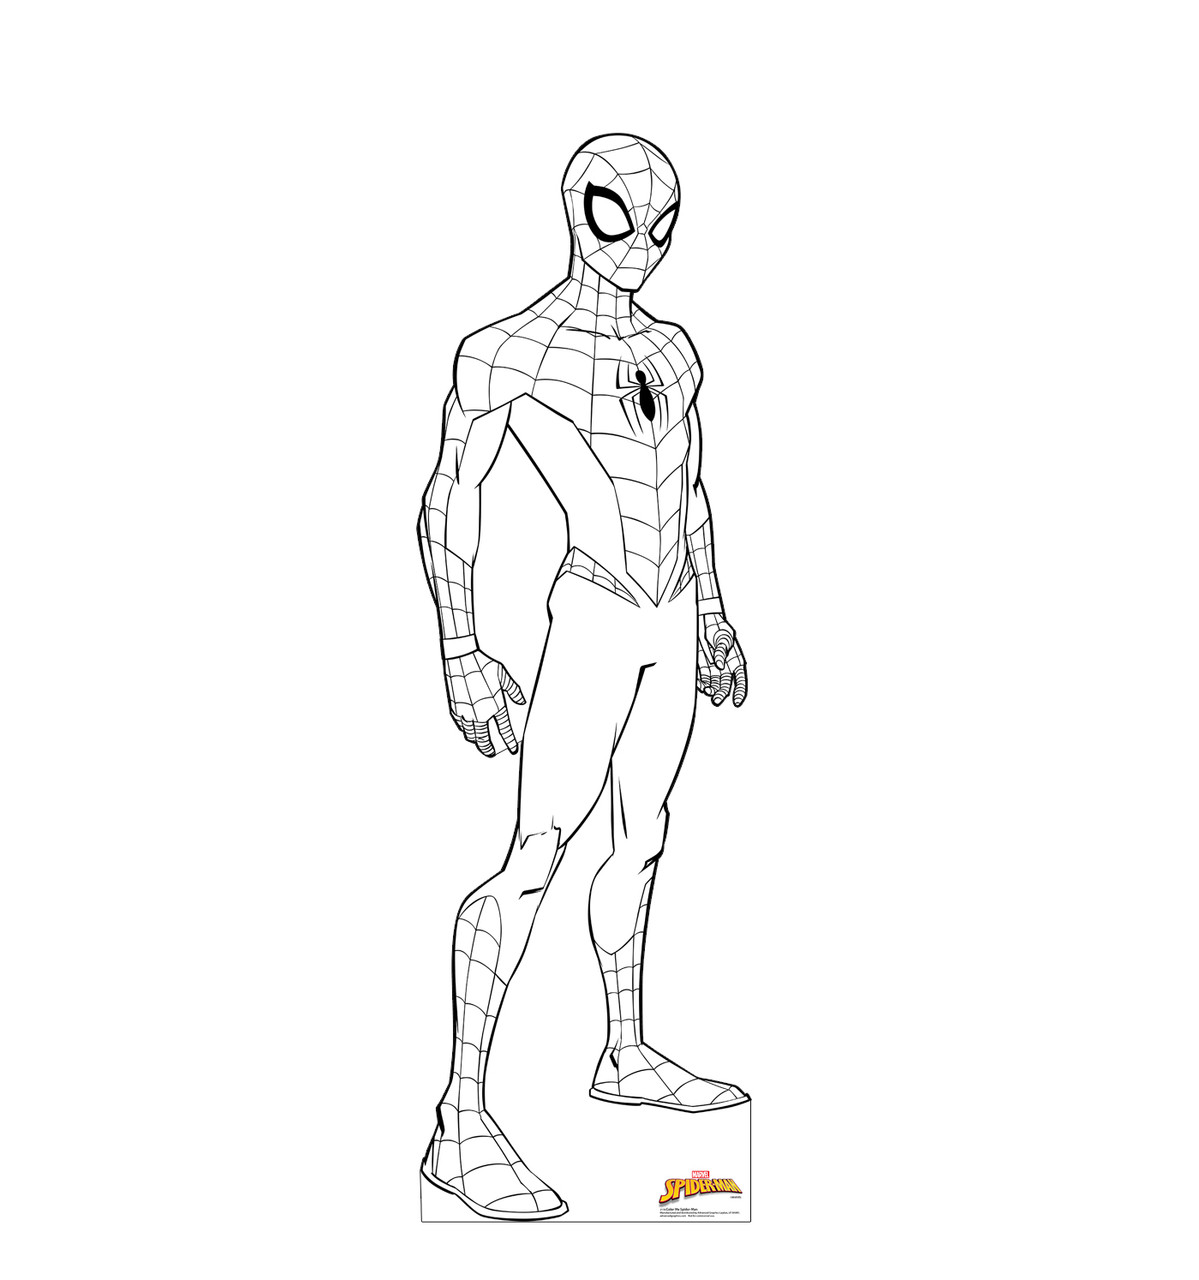 Life-size cardboard standee of Color Me Spider-Man from Marvel.